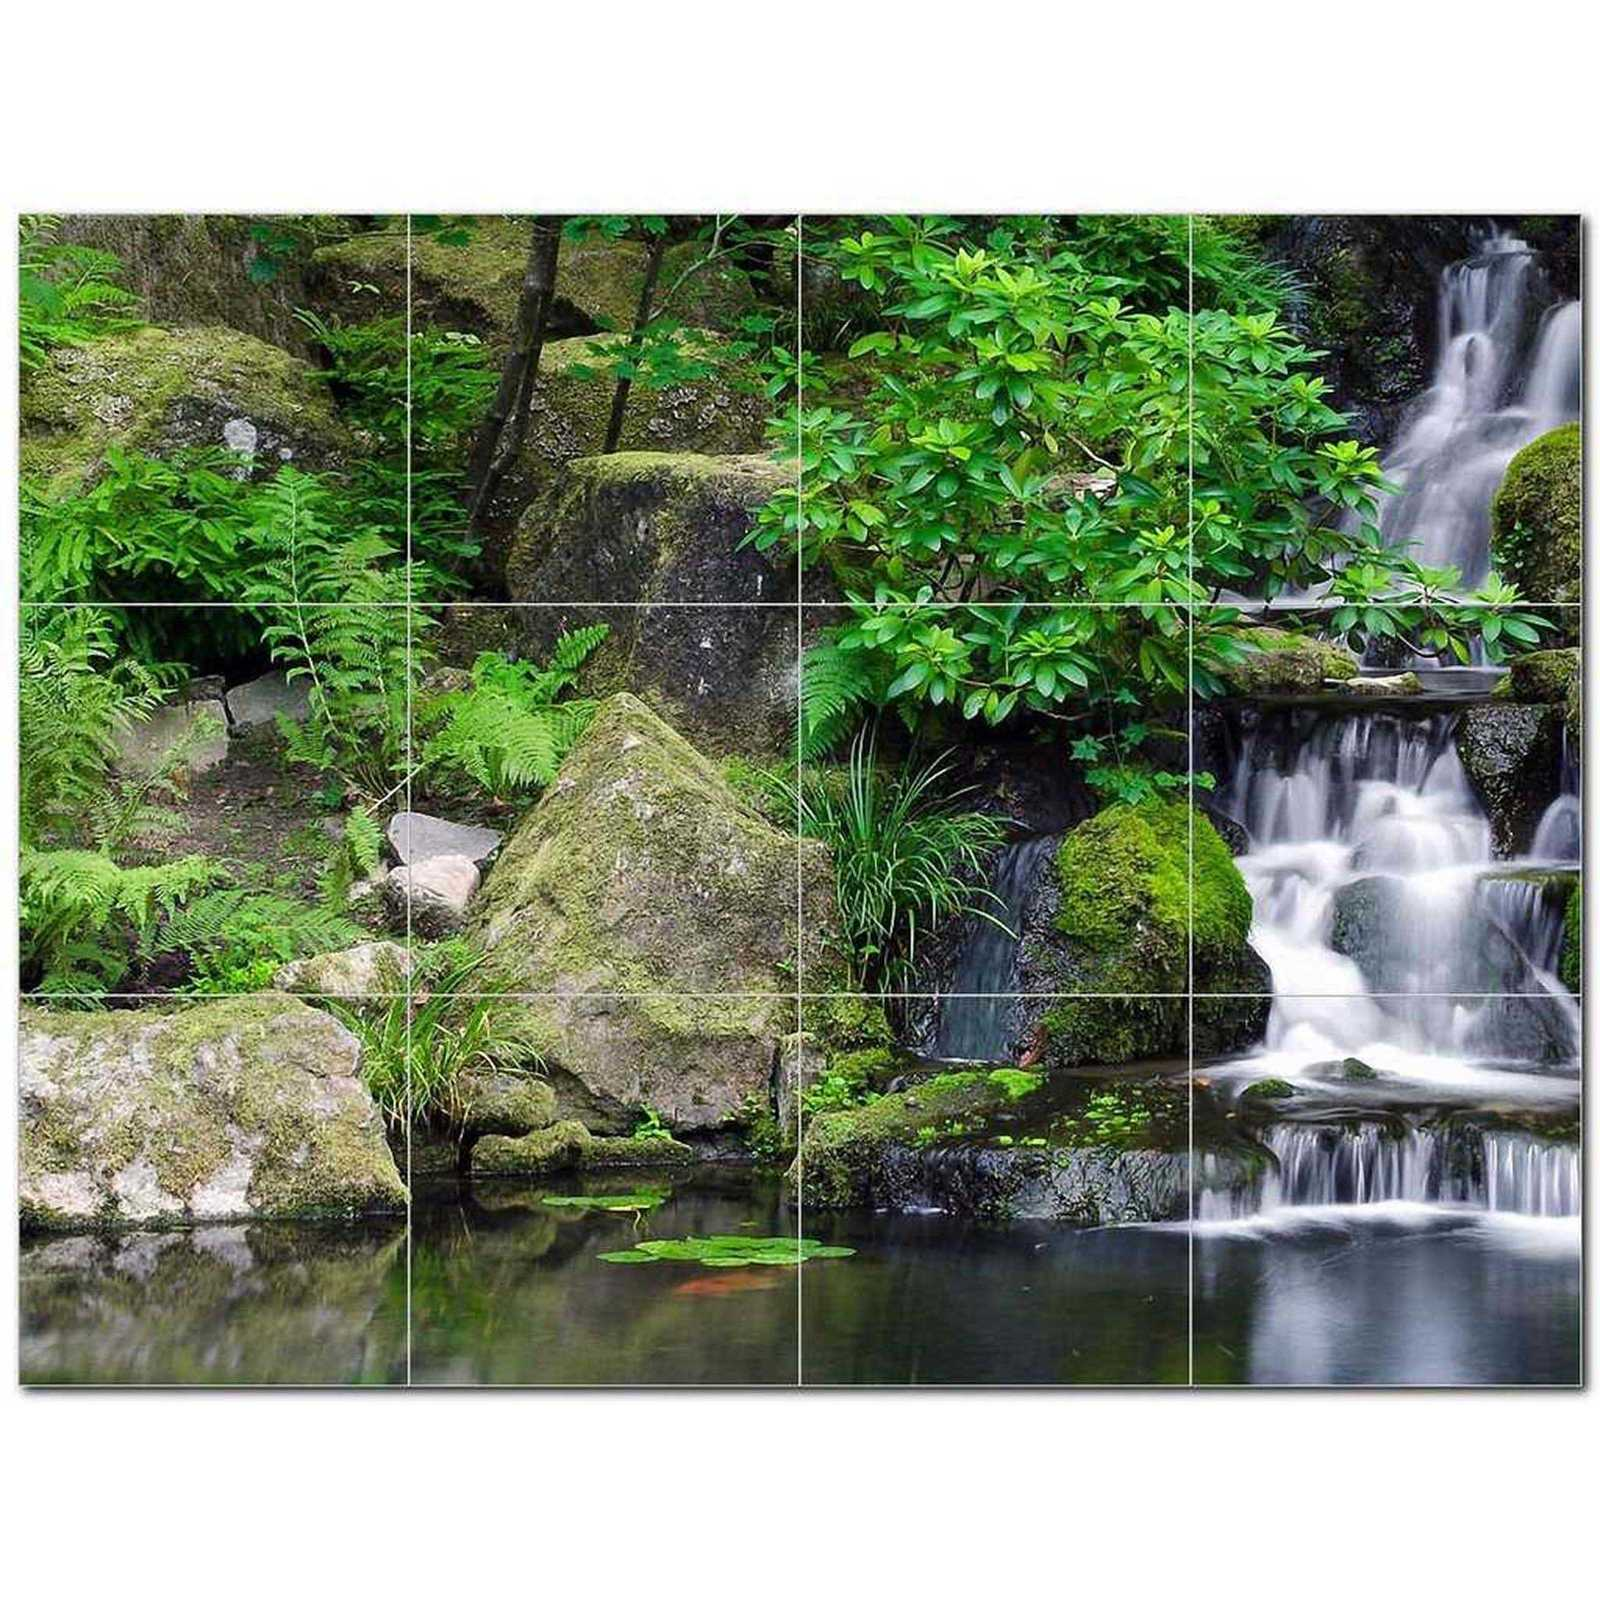 Primary image for Waterfall Photo Ceramic Tile Mural Kitchen Backsplash Bathroom Shower BAZ406101